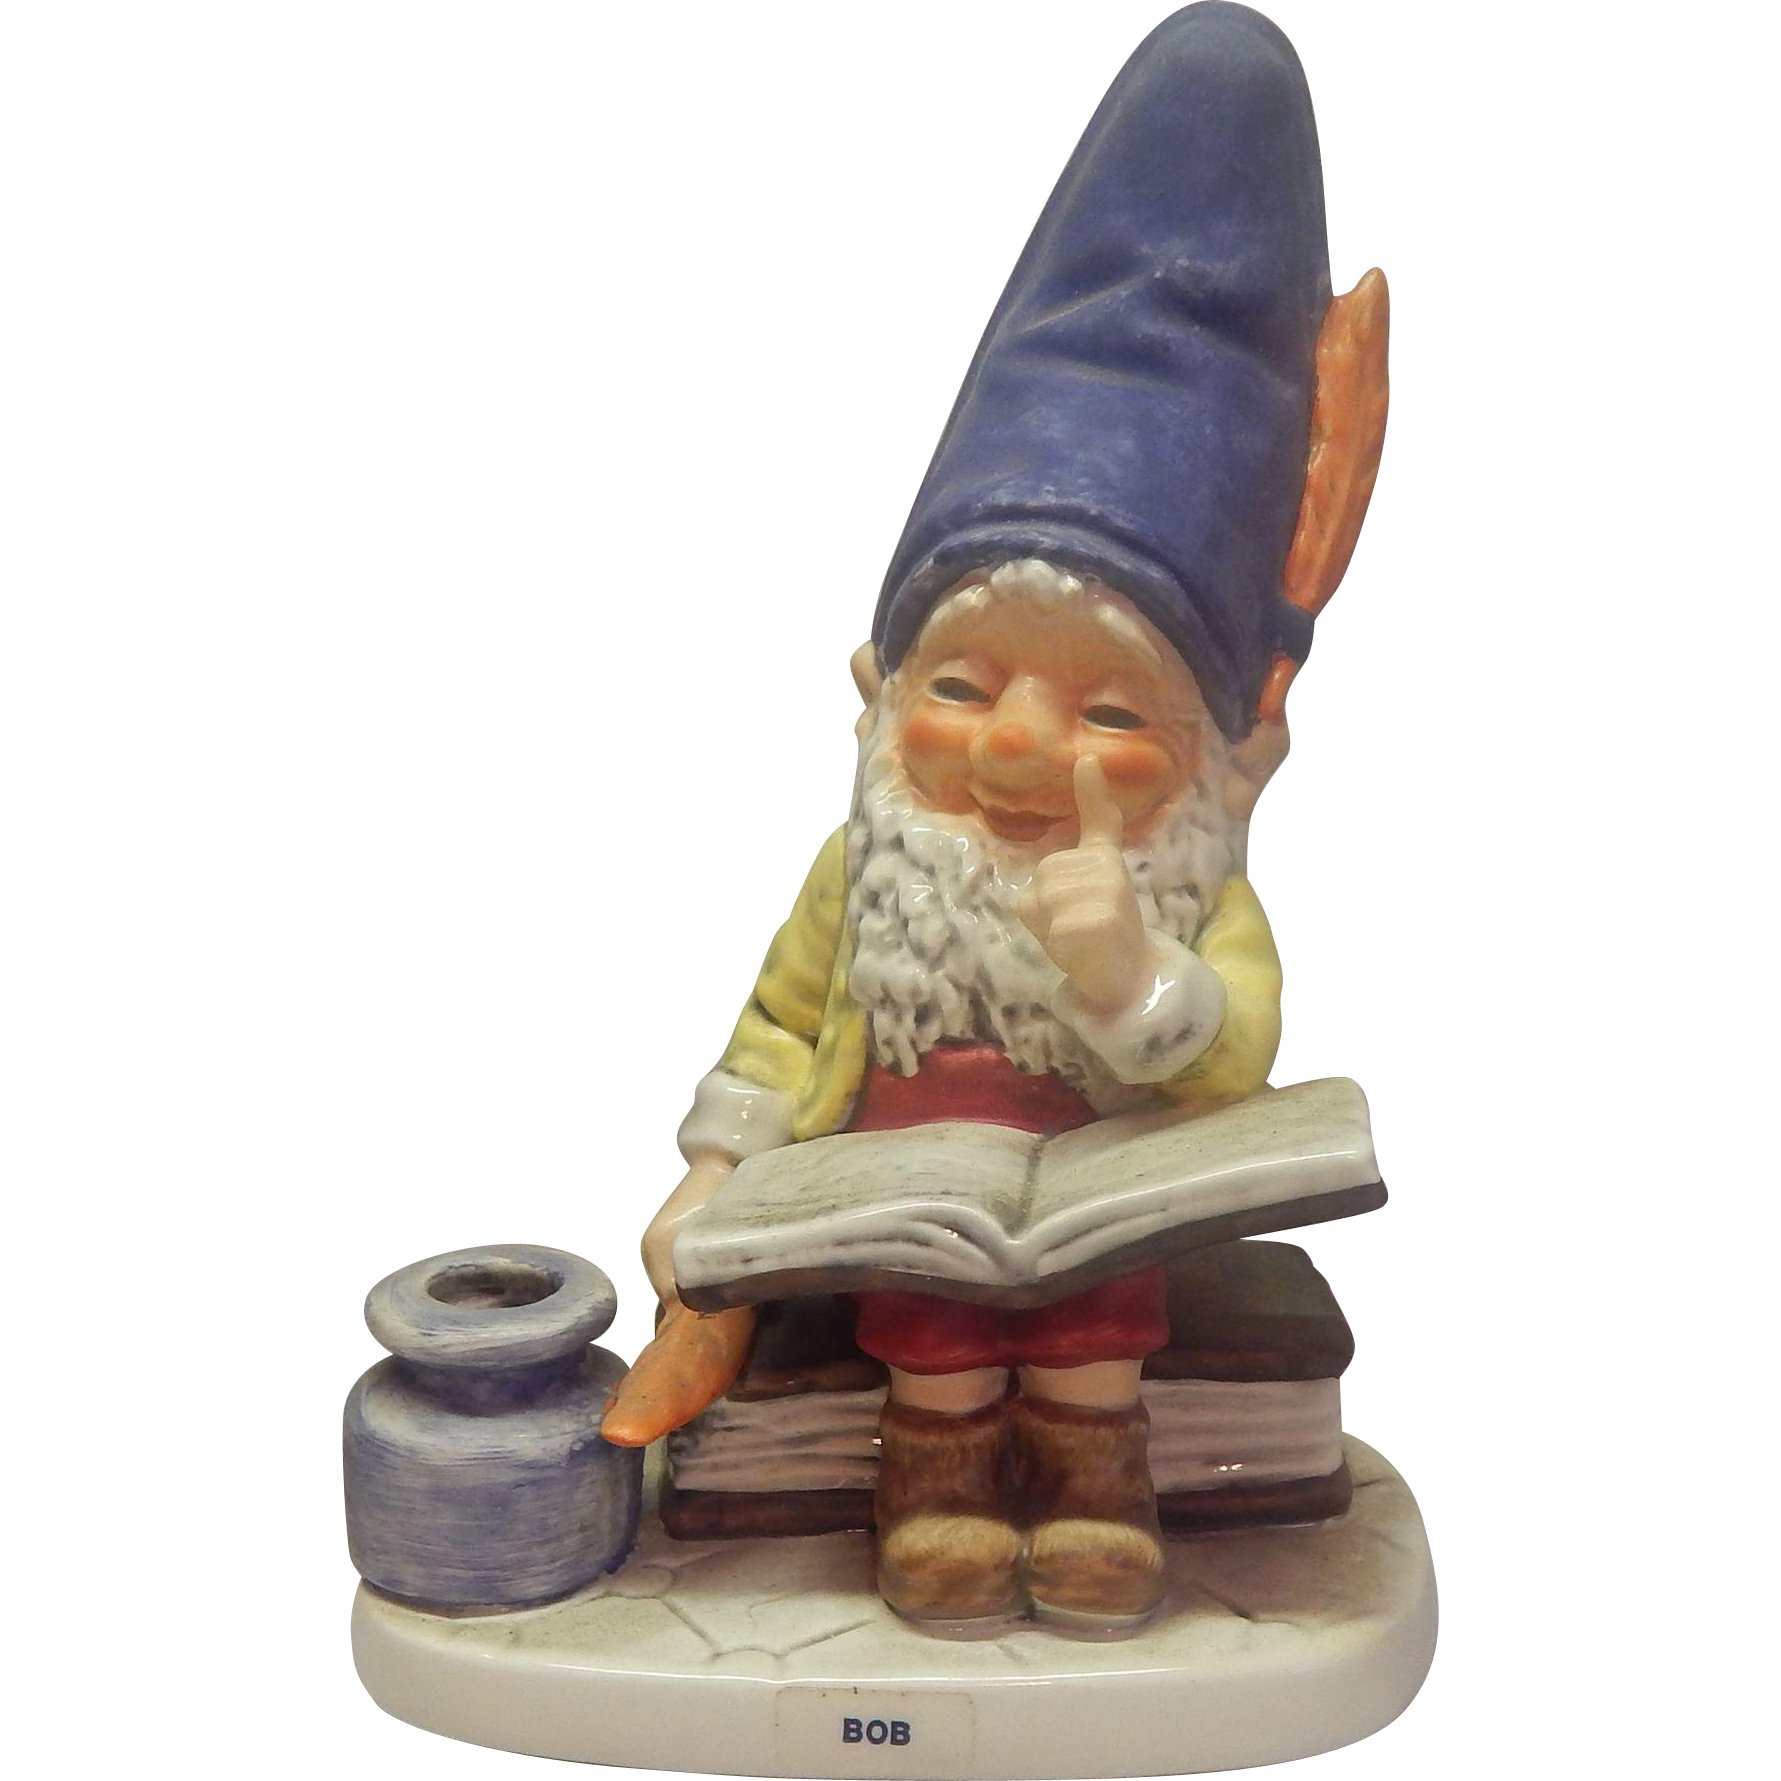 Goebel Co-Boy Bob the Bookworm Gnome Figurine